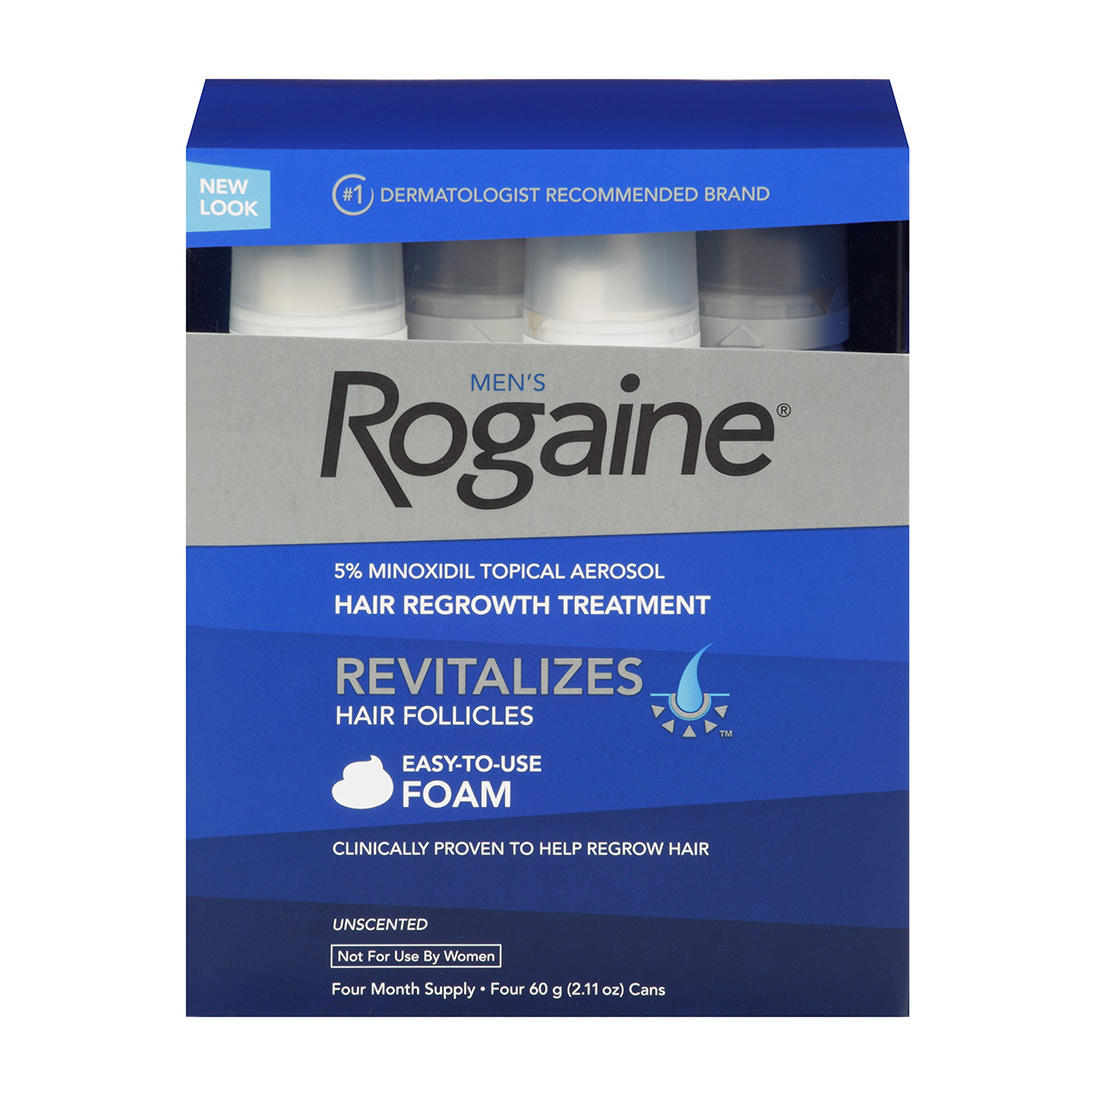 image regarding Printable Rogaine Coupon referred to as Mens Rogaine Hair Decline and Hair Regrowth Process Minoxidil Topical Tactic, 4 pk./11 oz.